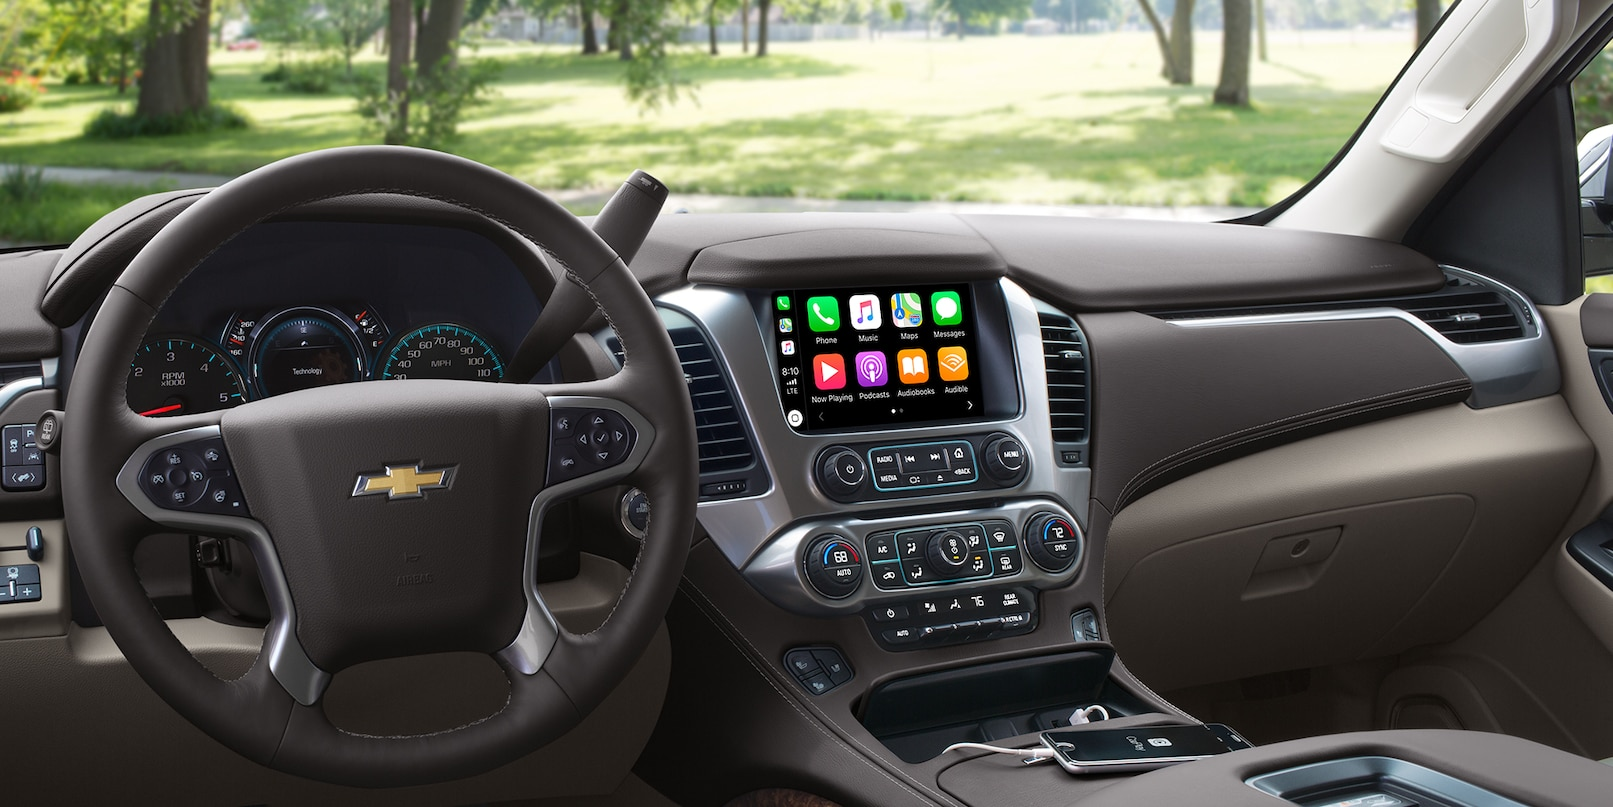 Interior of the 2019 Chevrolet Tahoe